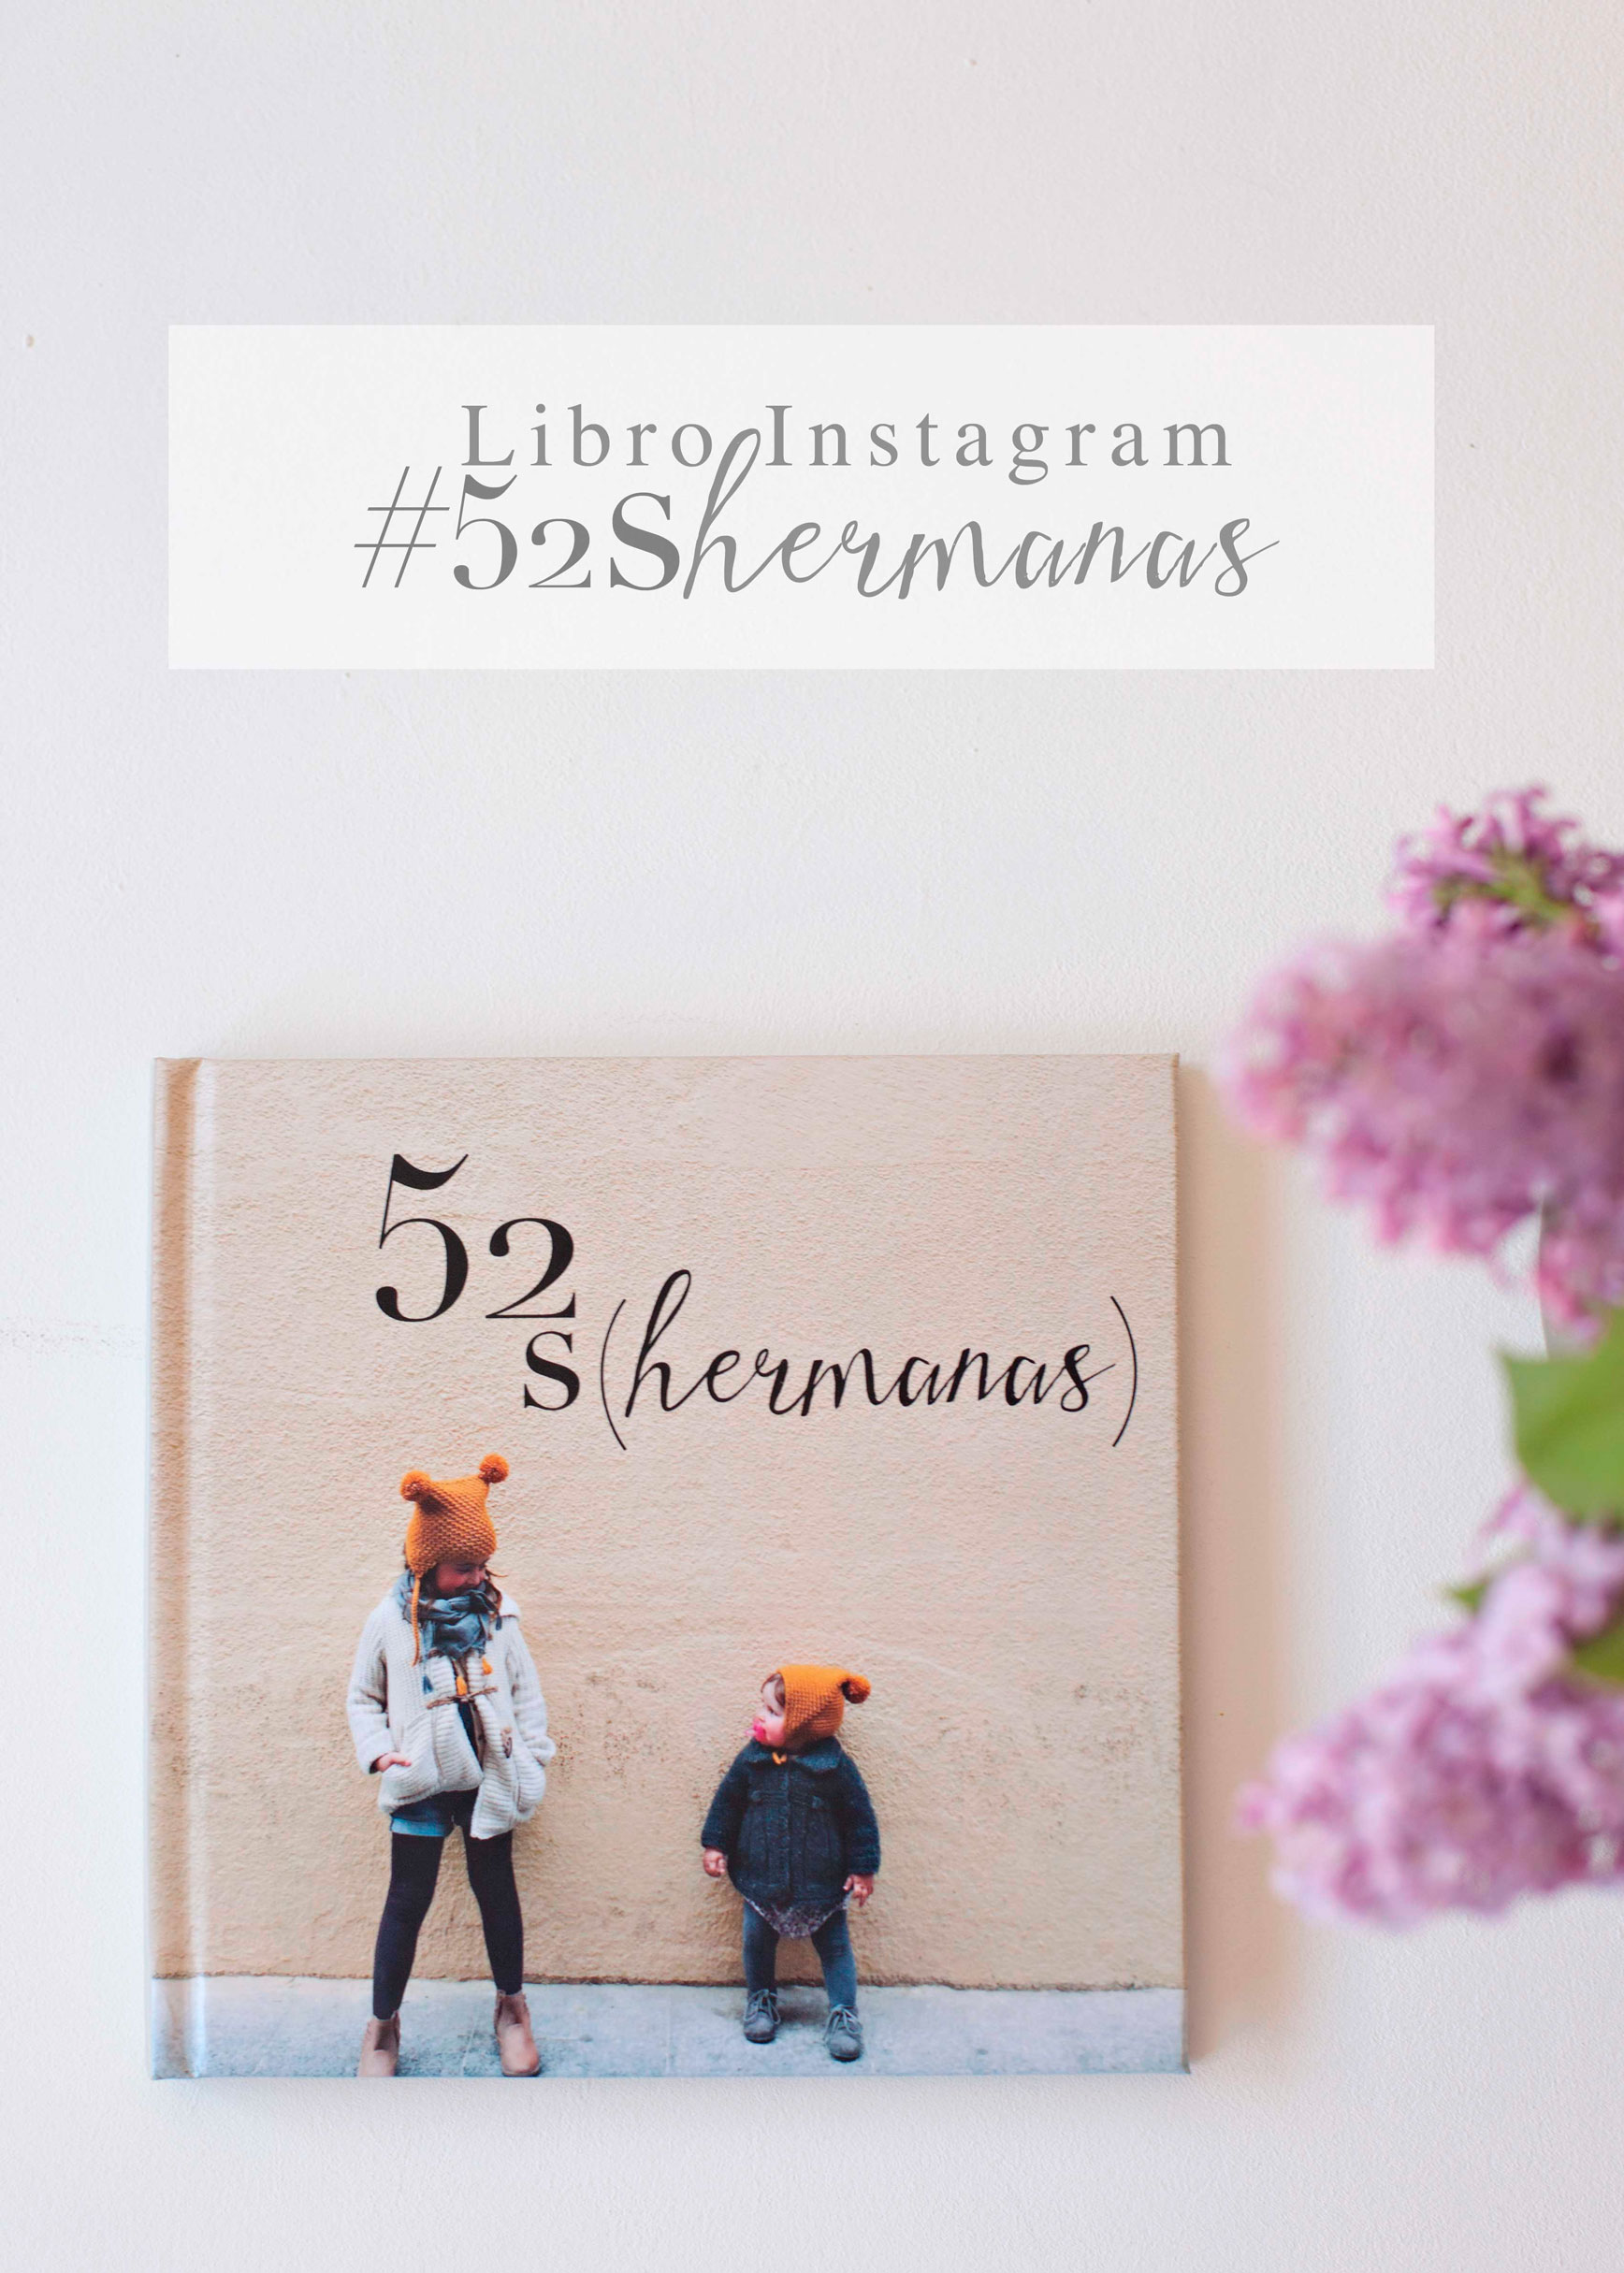 Libro de fotos Instagram: 52 Shermanas